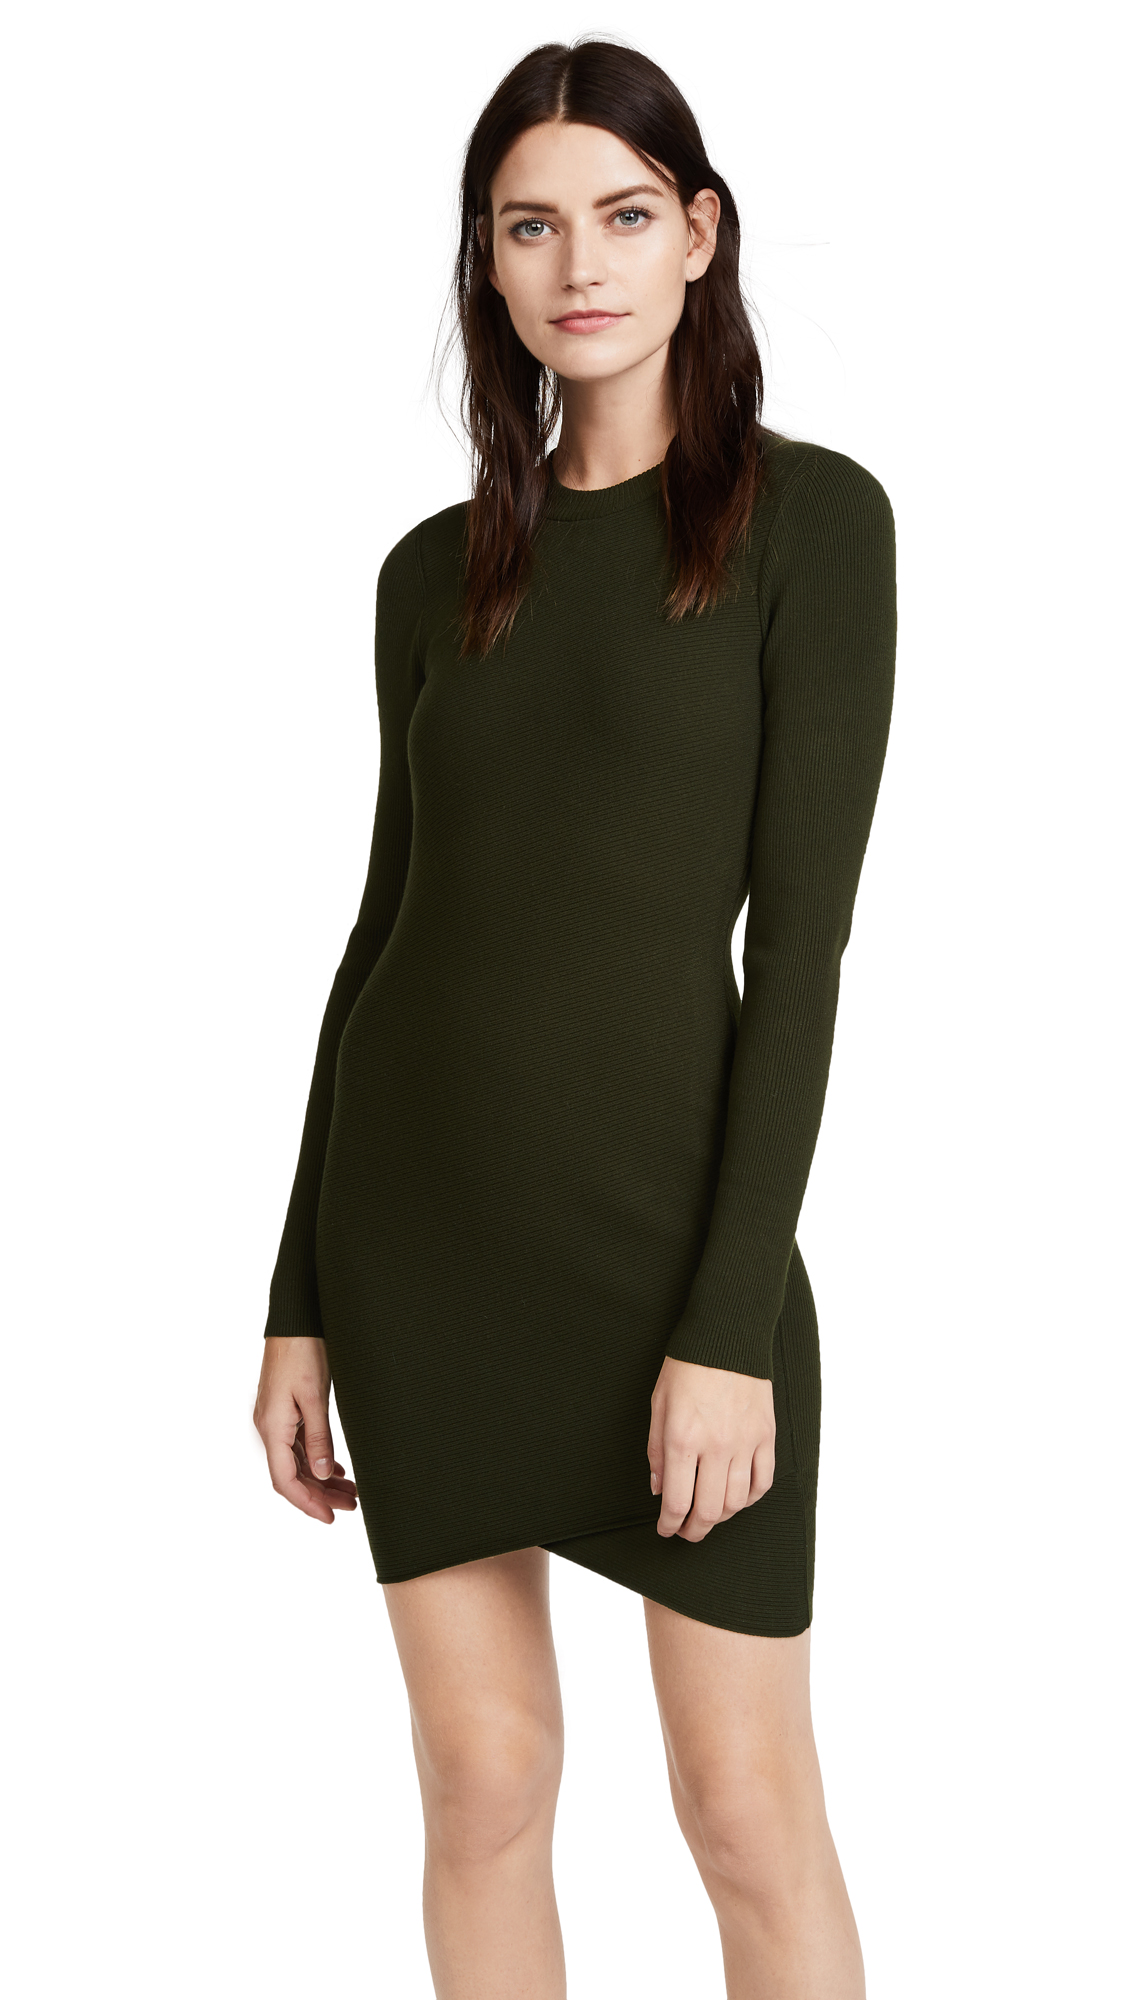 A.L.C. Lara Dress - Seaweed